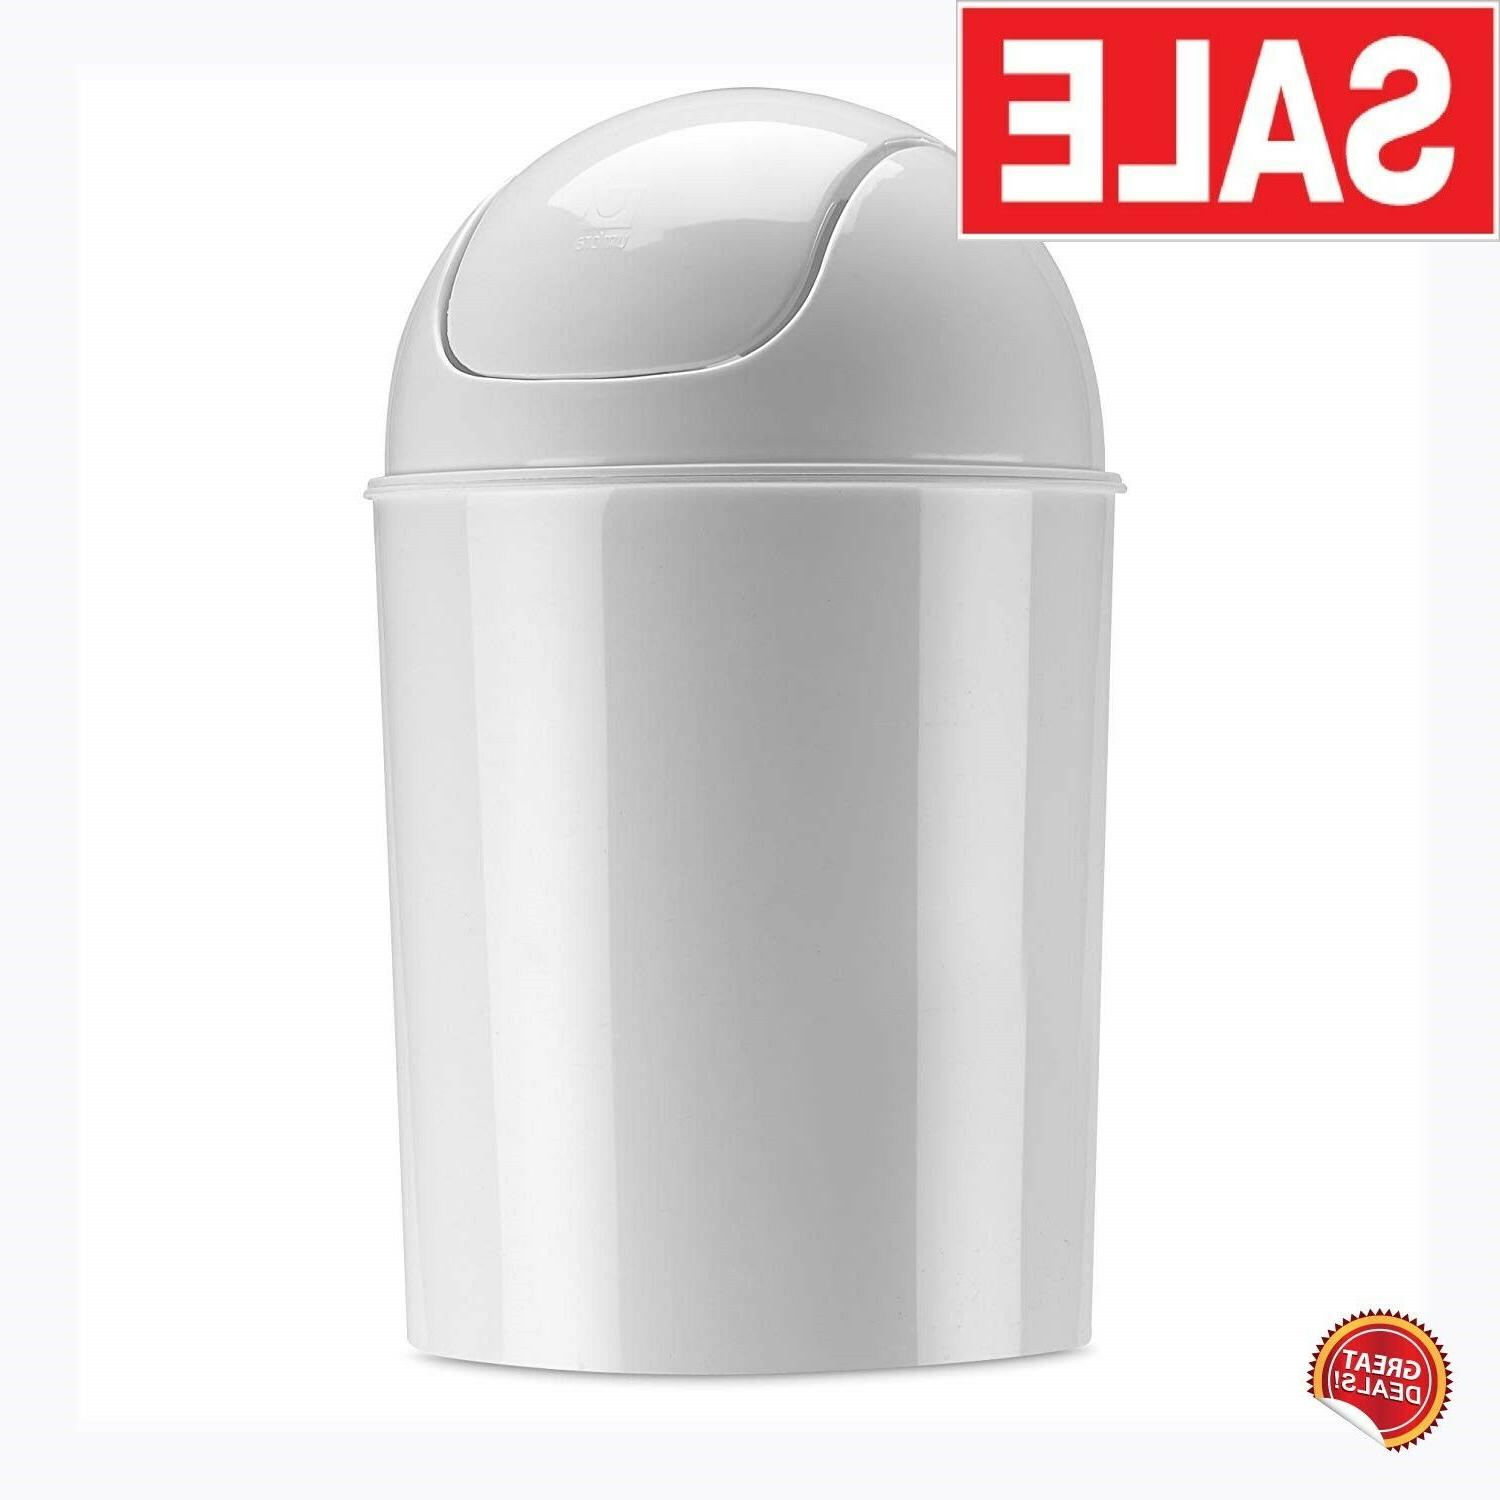 small trash can with lid bathroom kitchen bedroom